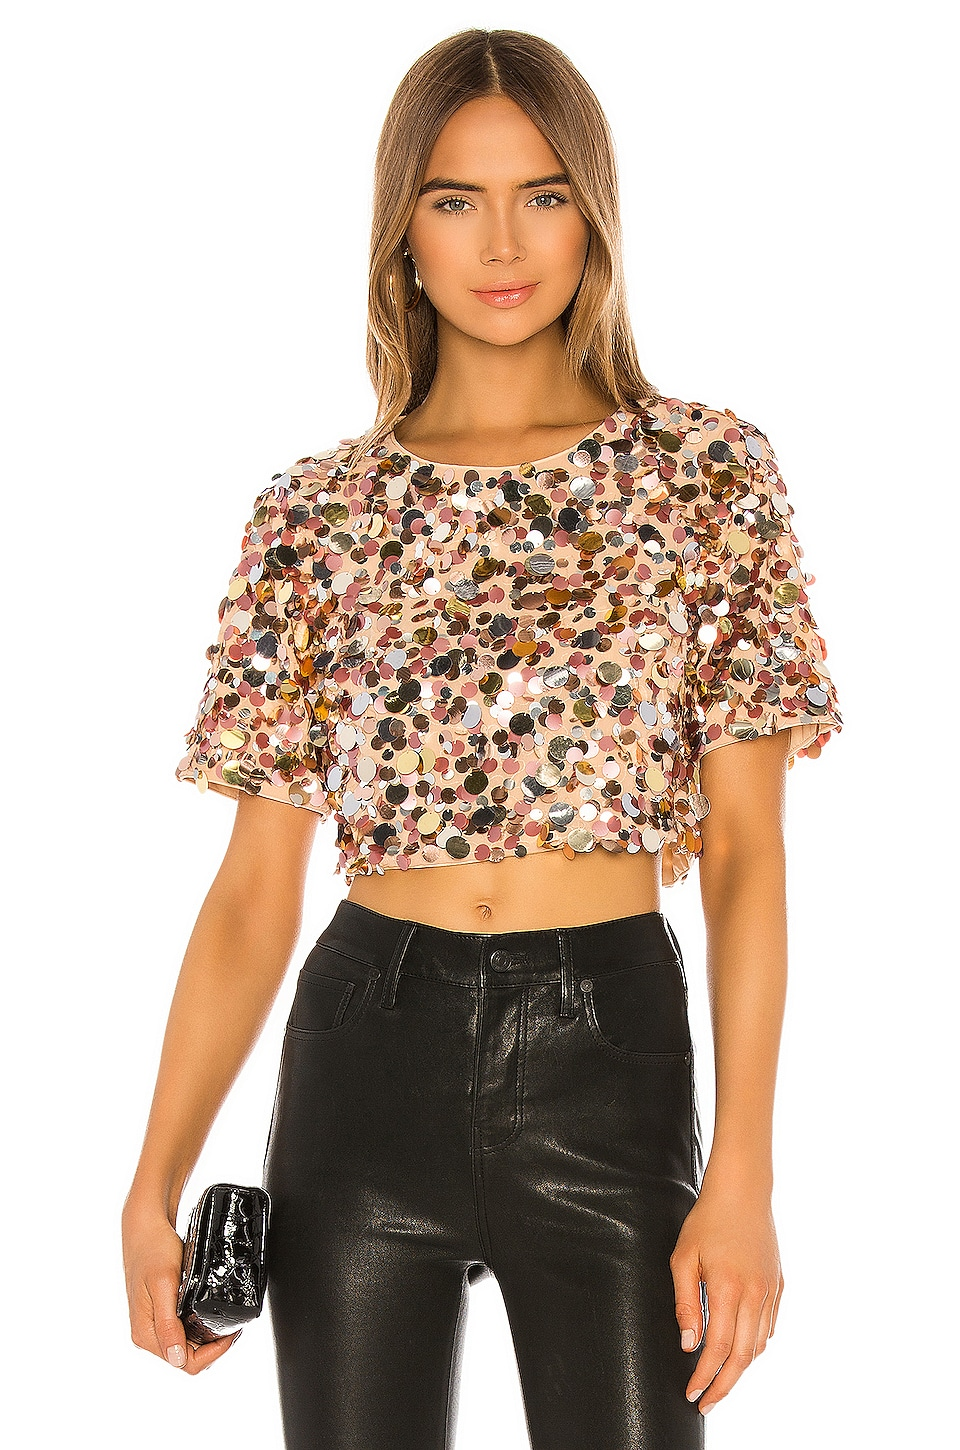 Lovers + Friends Raine Crop Top in Girls Night